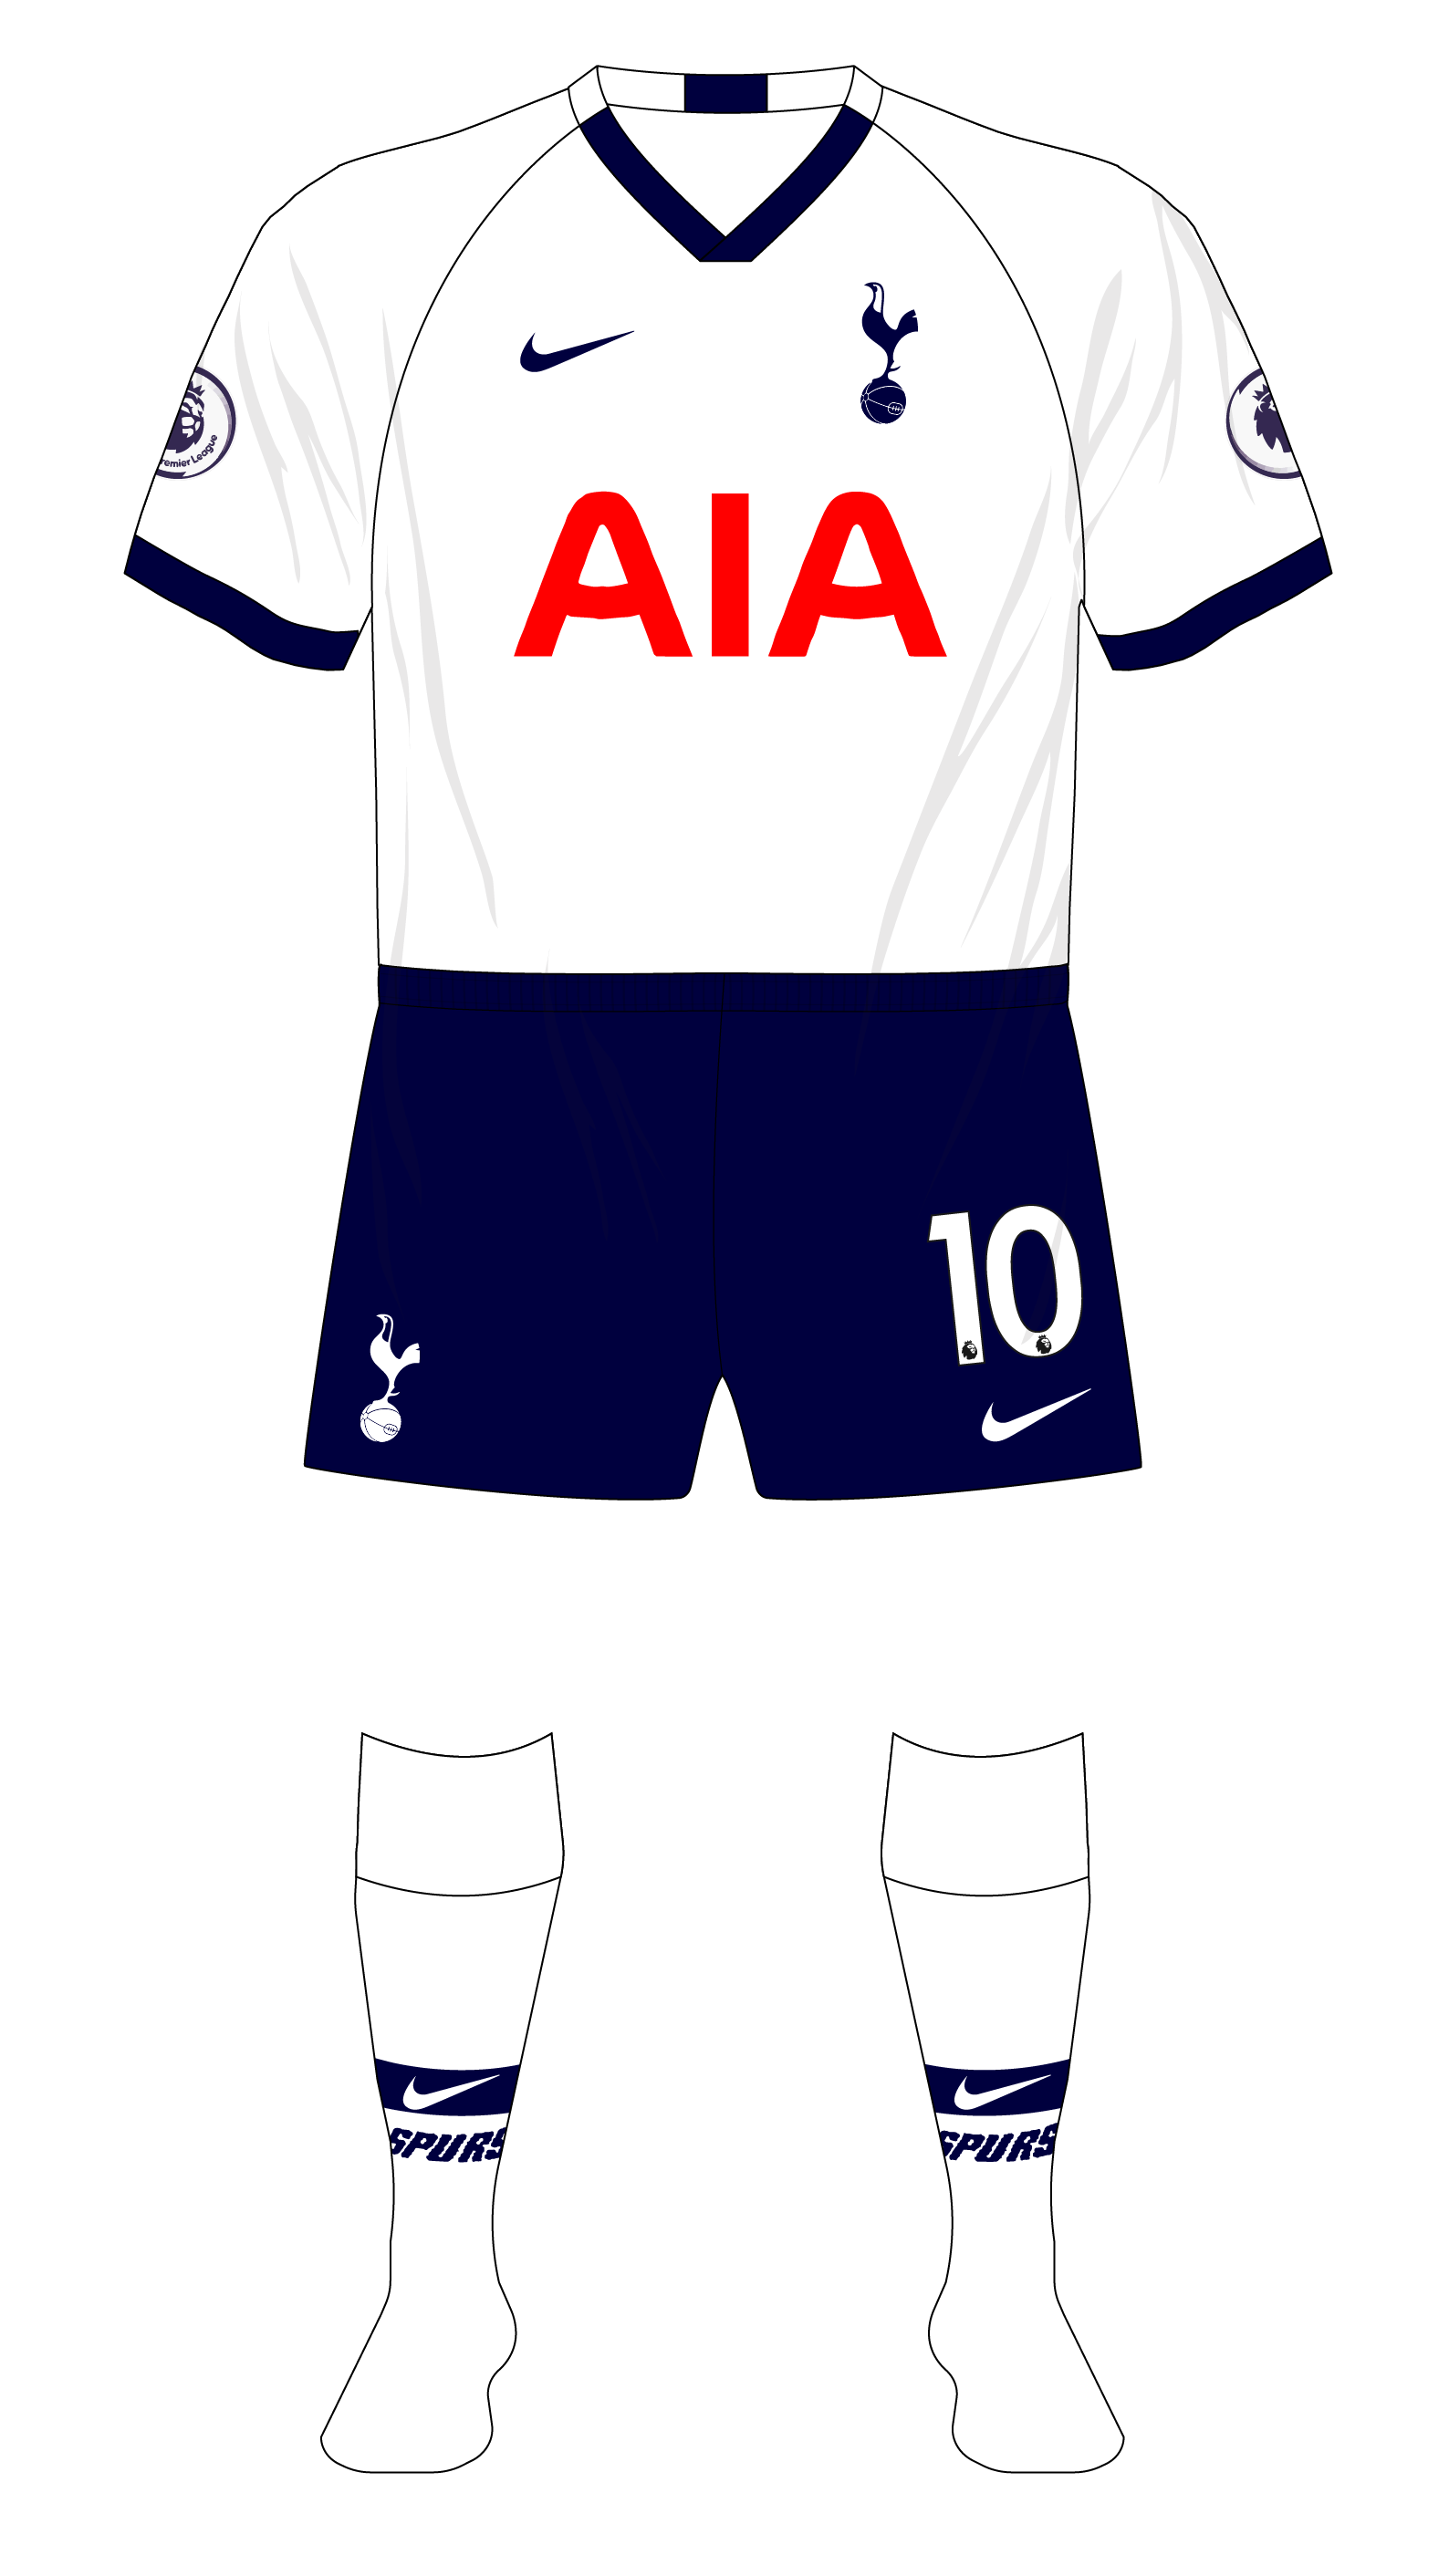 Tottenham Hotspur Spurs 2019 2020 Nike Home 01 Museum Of Jerseys